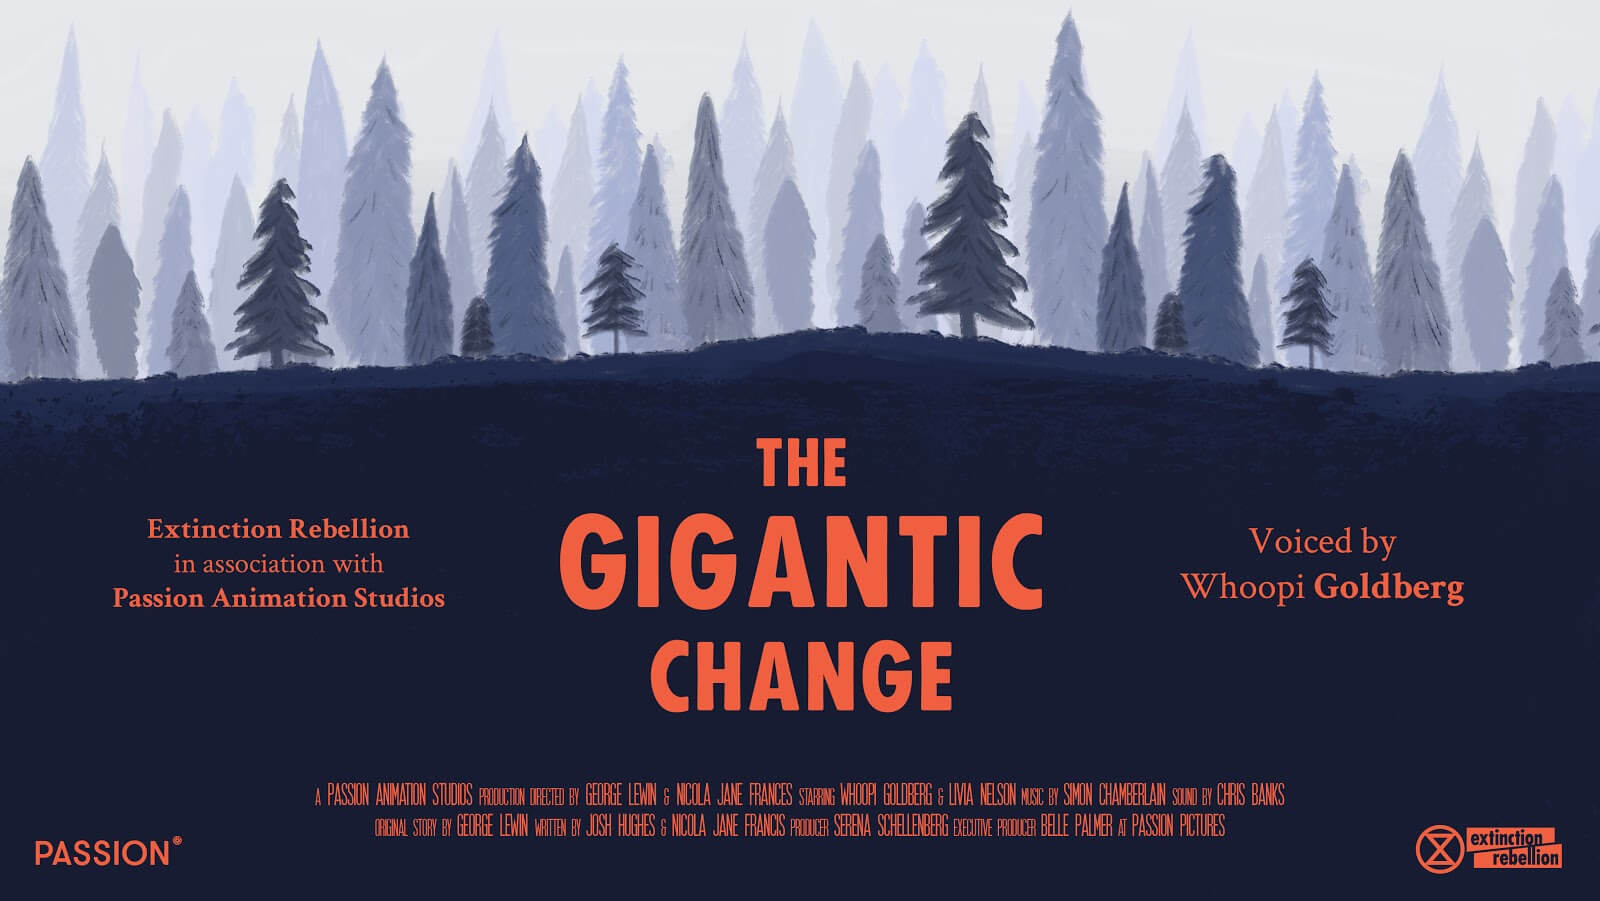 The Gigantic Change movie flyer